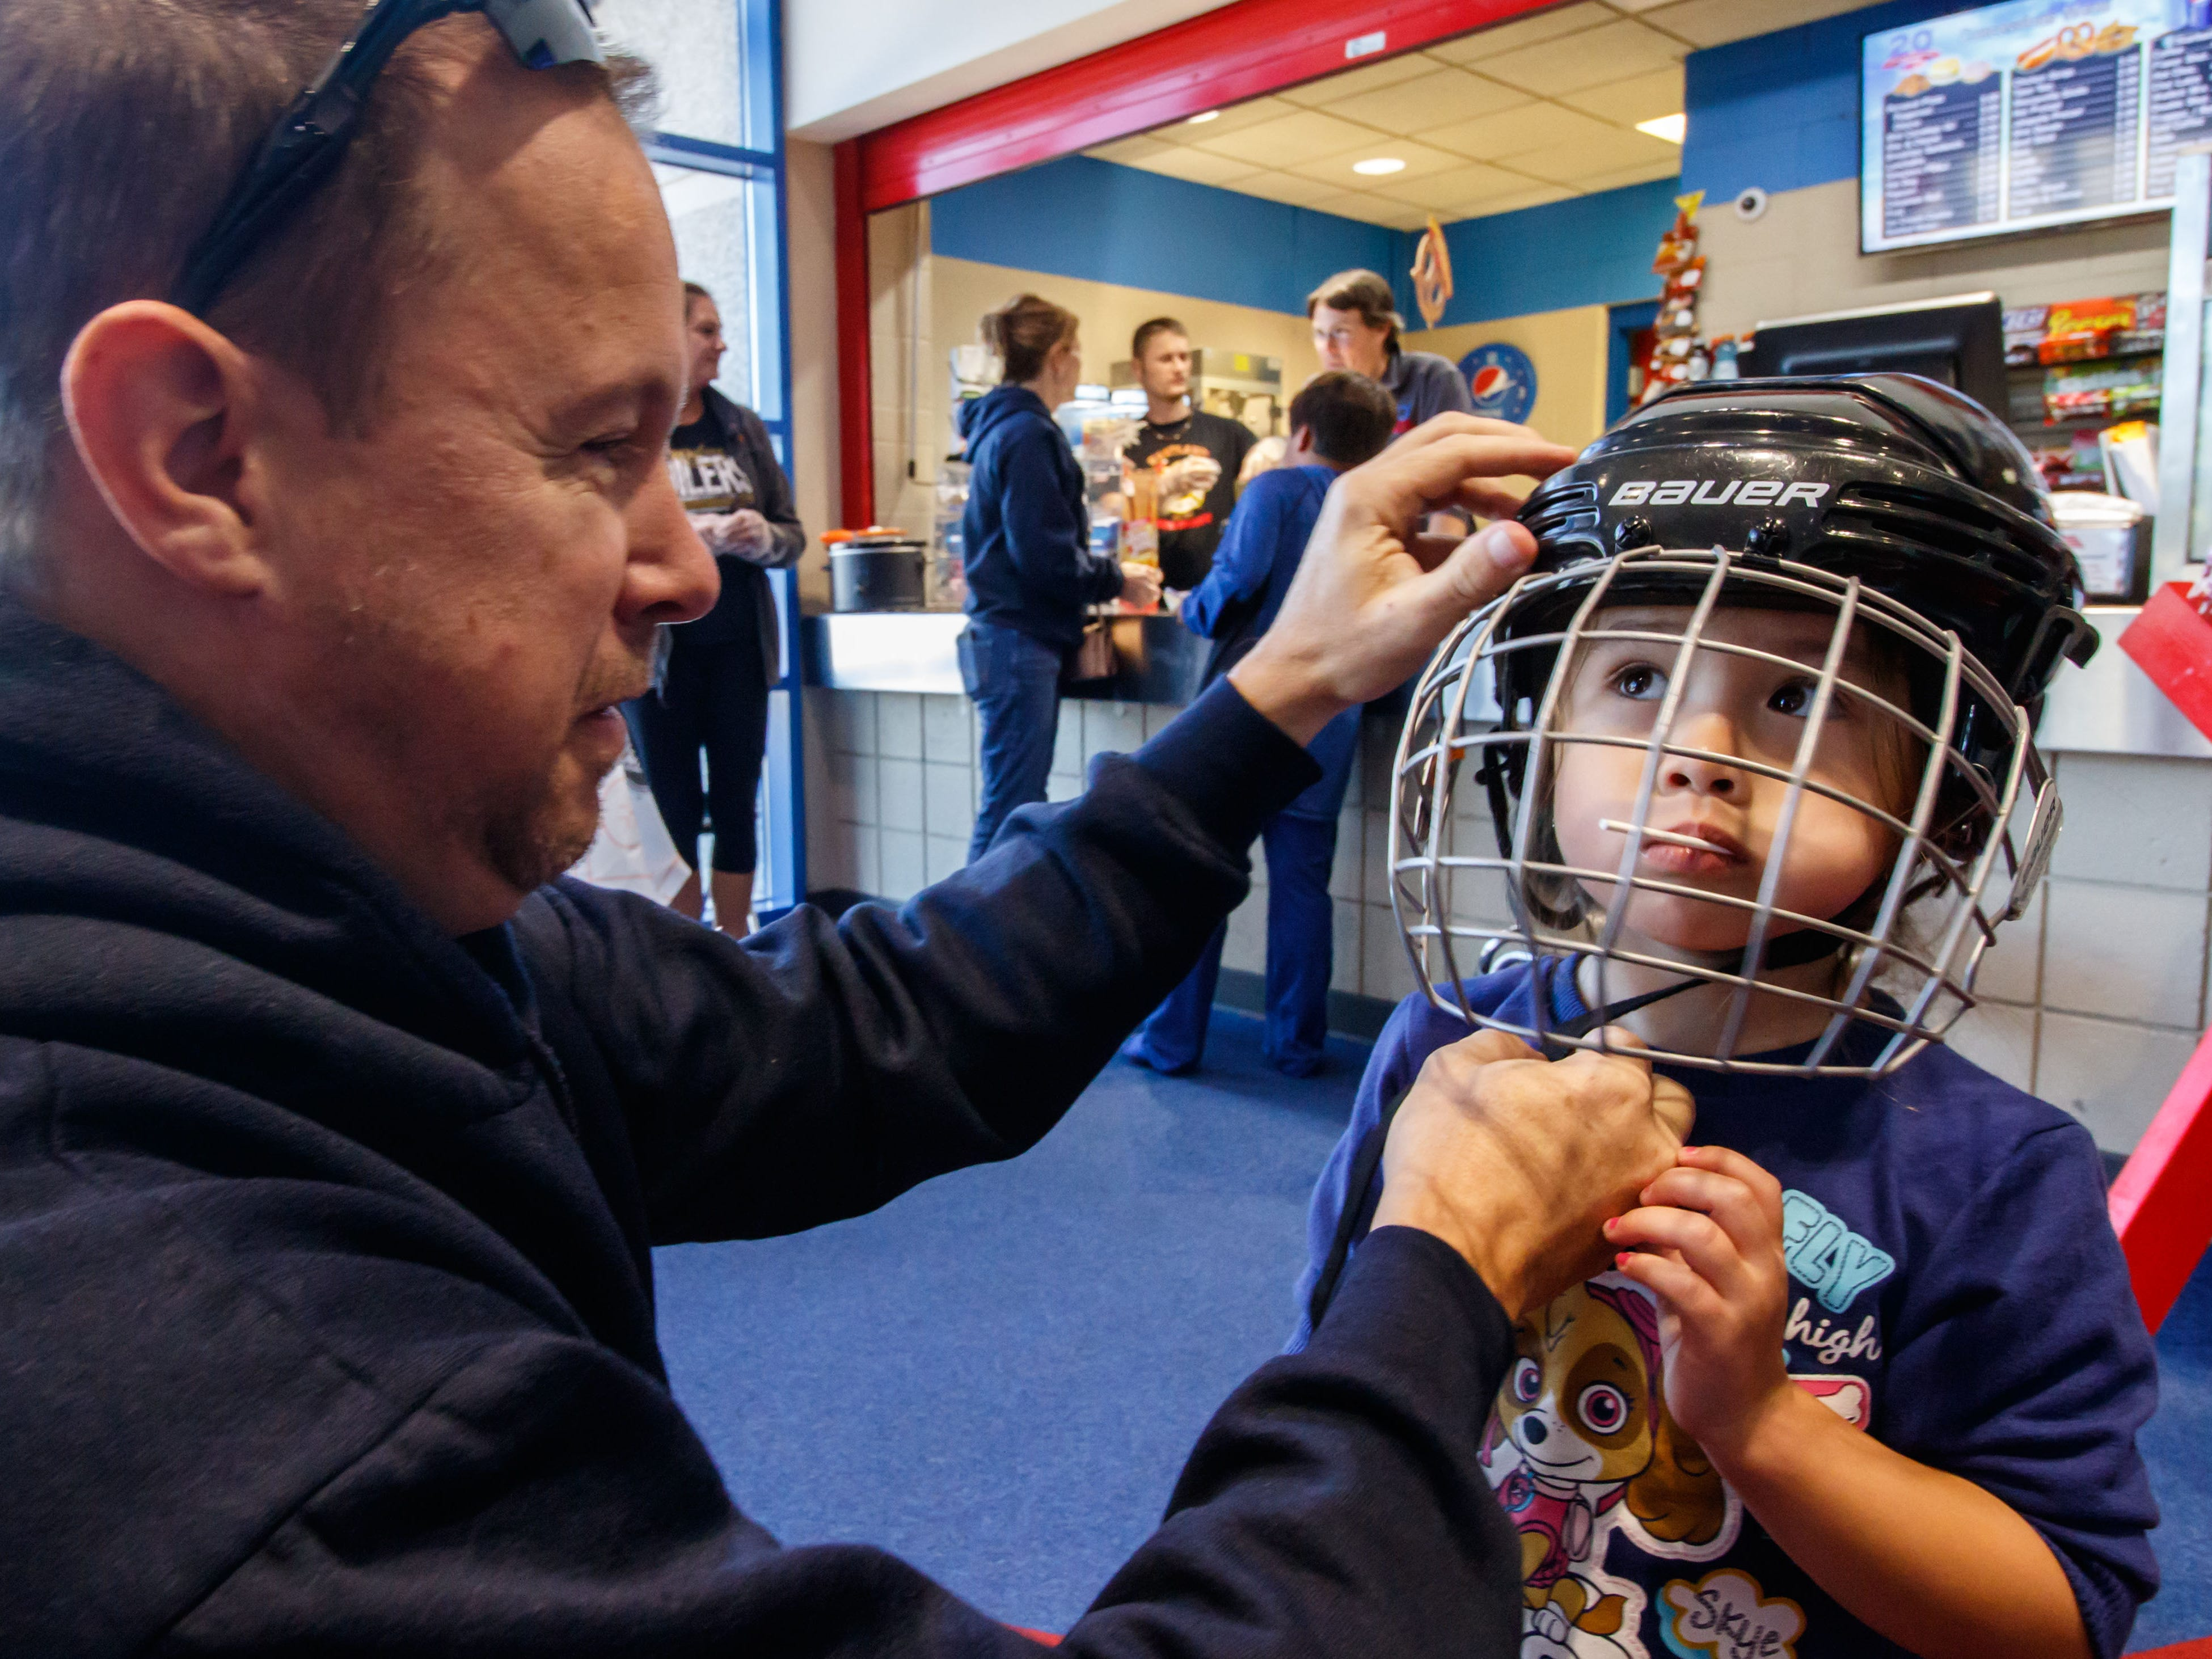 Three-year-old Anna Hodgson of Wales enjoys a lollipop while her father Sean fits her for a hockey helmet during the Mullett Ice Center's 20th anniversary open house celebration on Sunday, Sept. 23, 2018. The event featured free public skating, speed and figure skating demonstrations, open ice times for hockey, Eisstock and more.